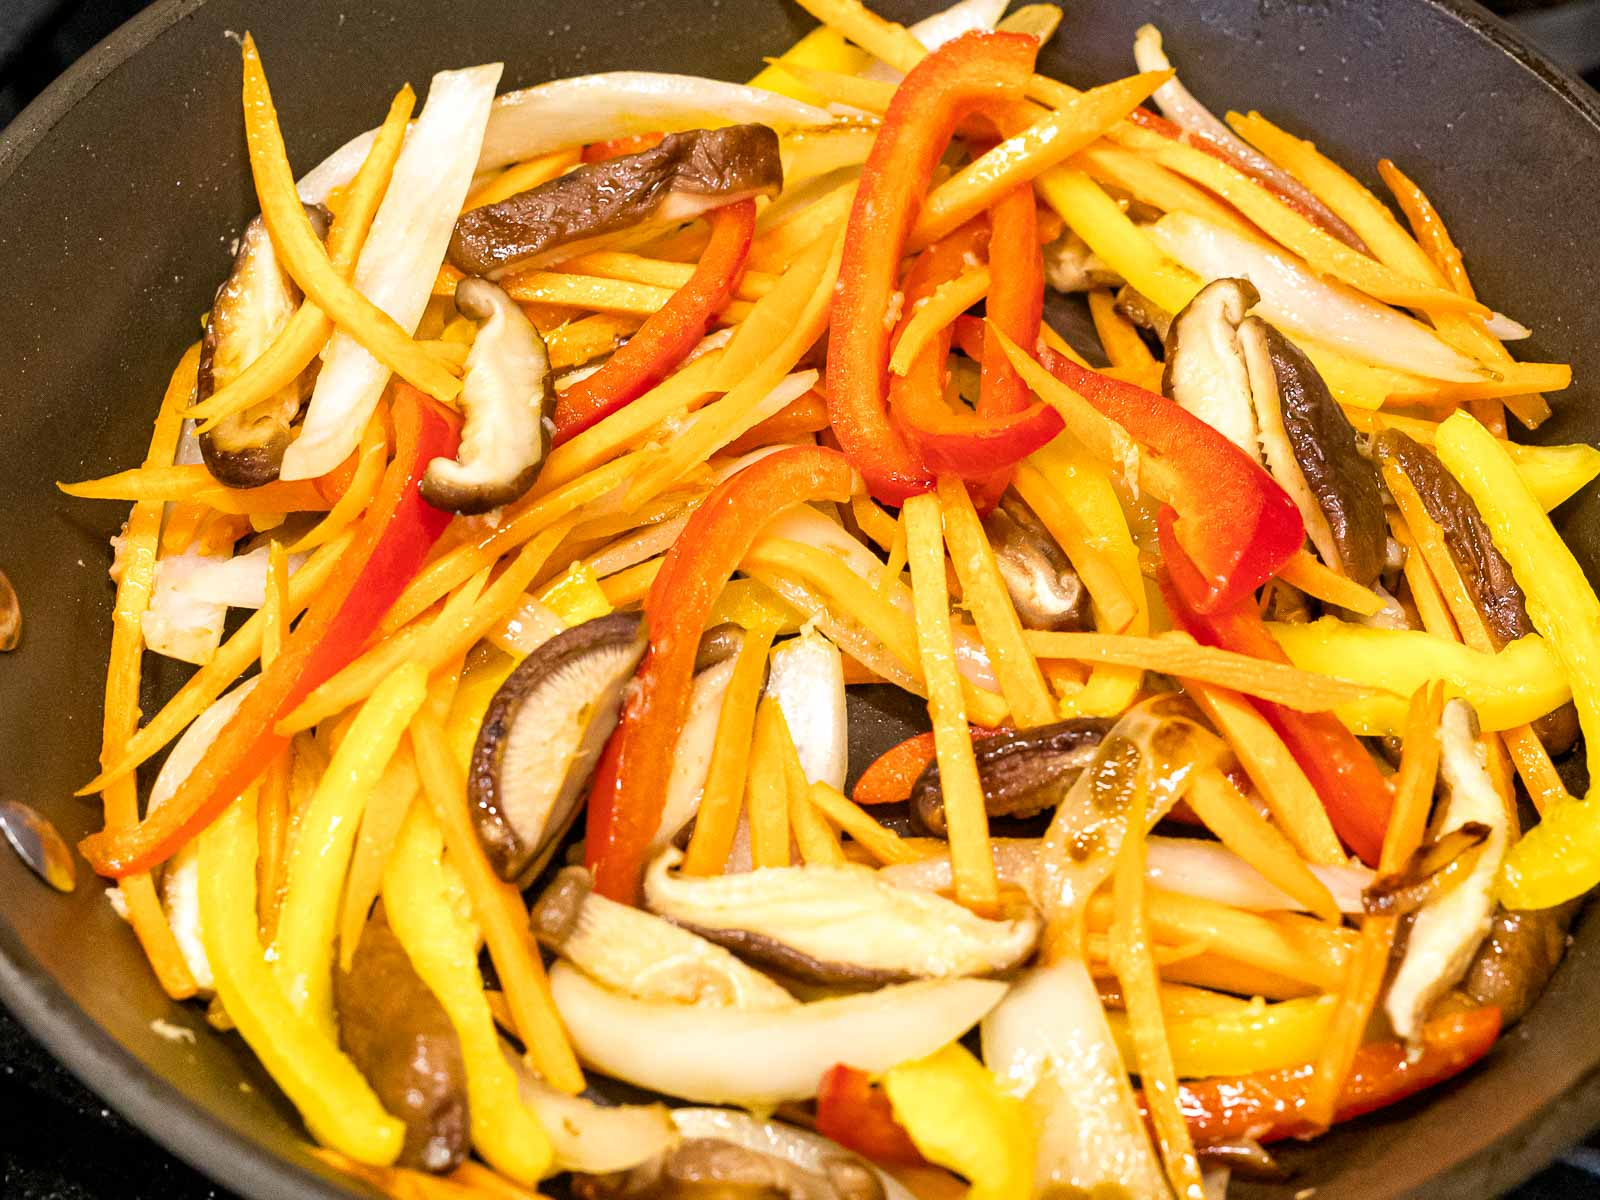 stir fried carrots, shiitake mushrooms, and bell peppers in a pan